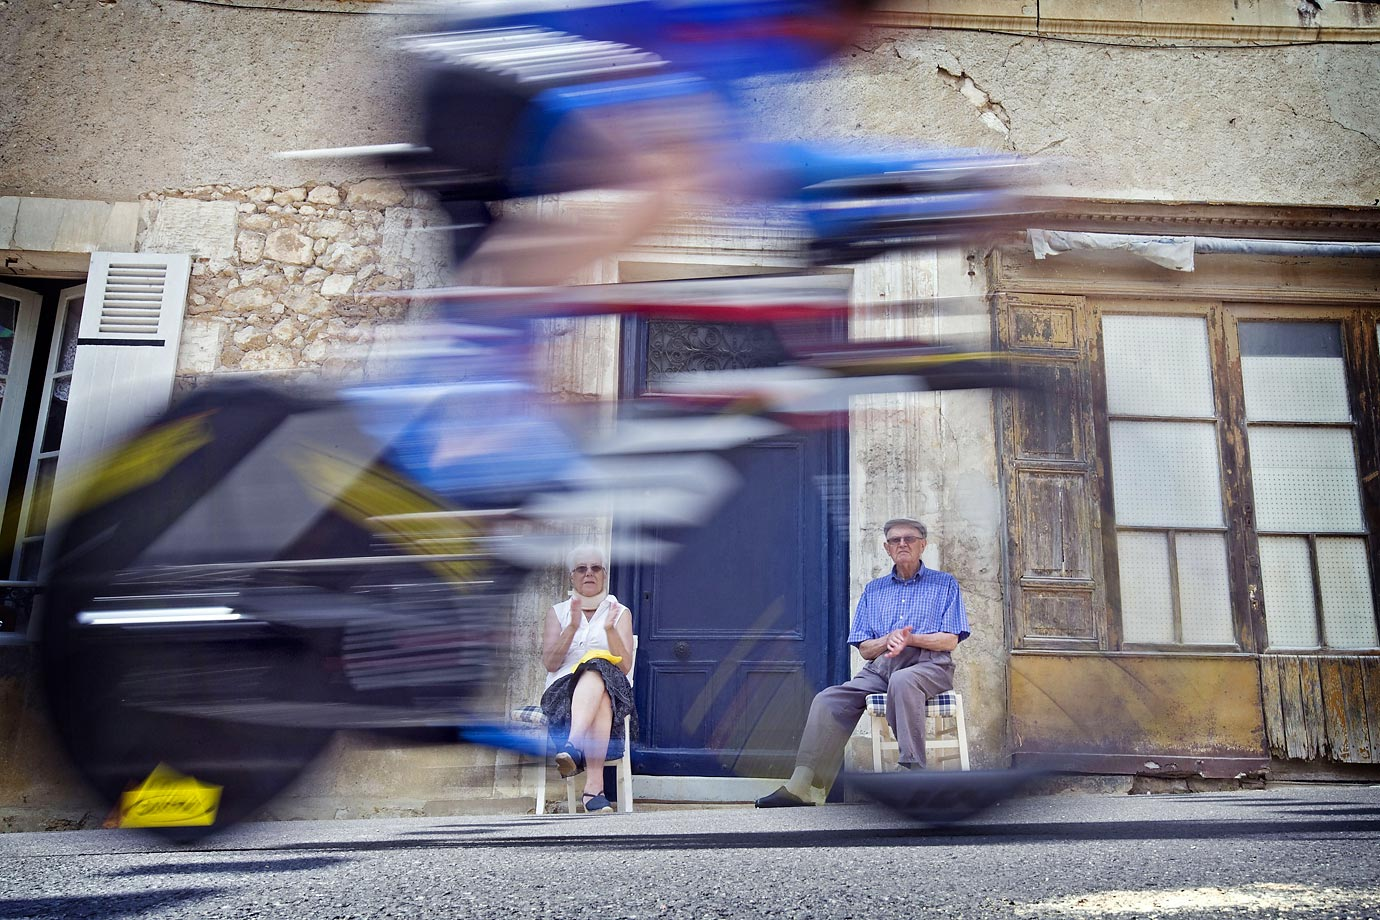 Spectators look on as a Tour de France biker zooms past.